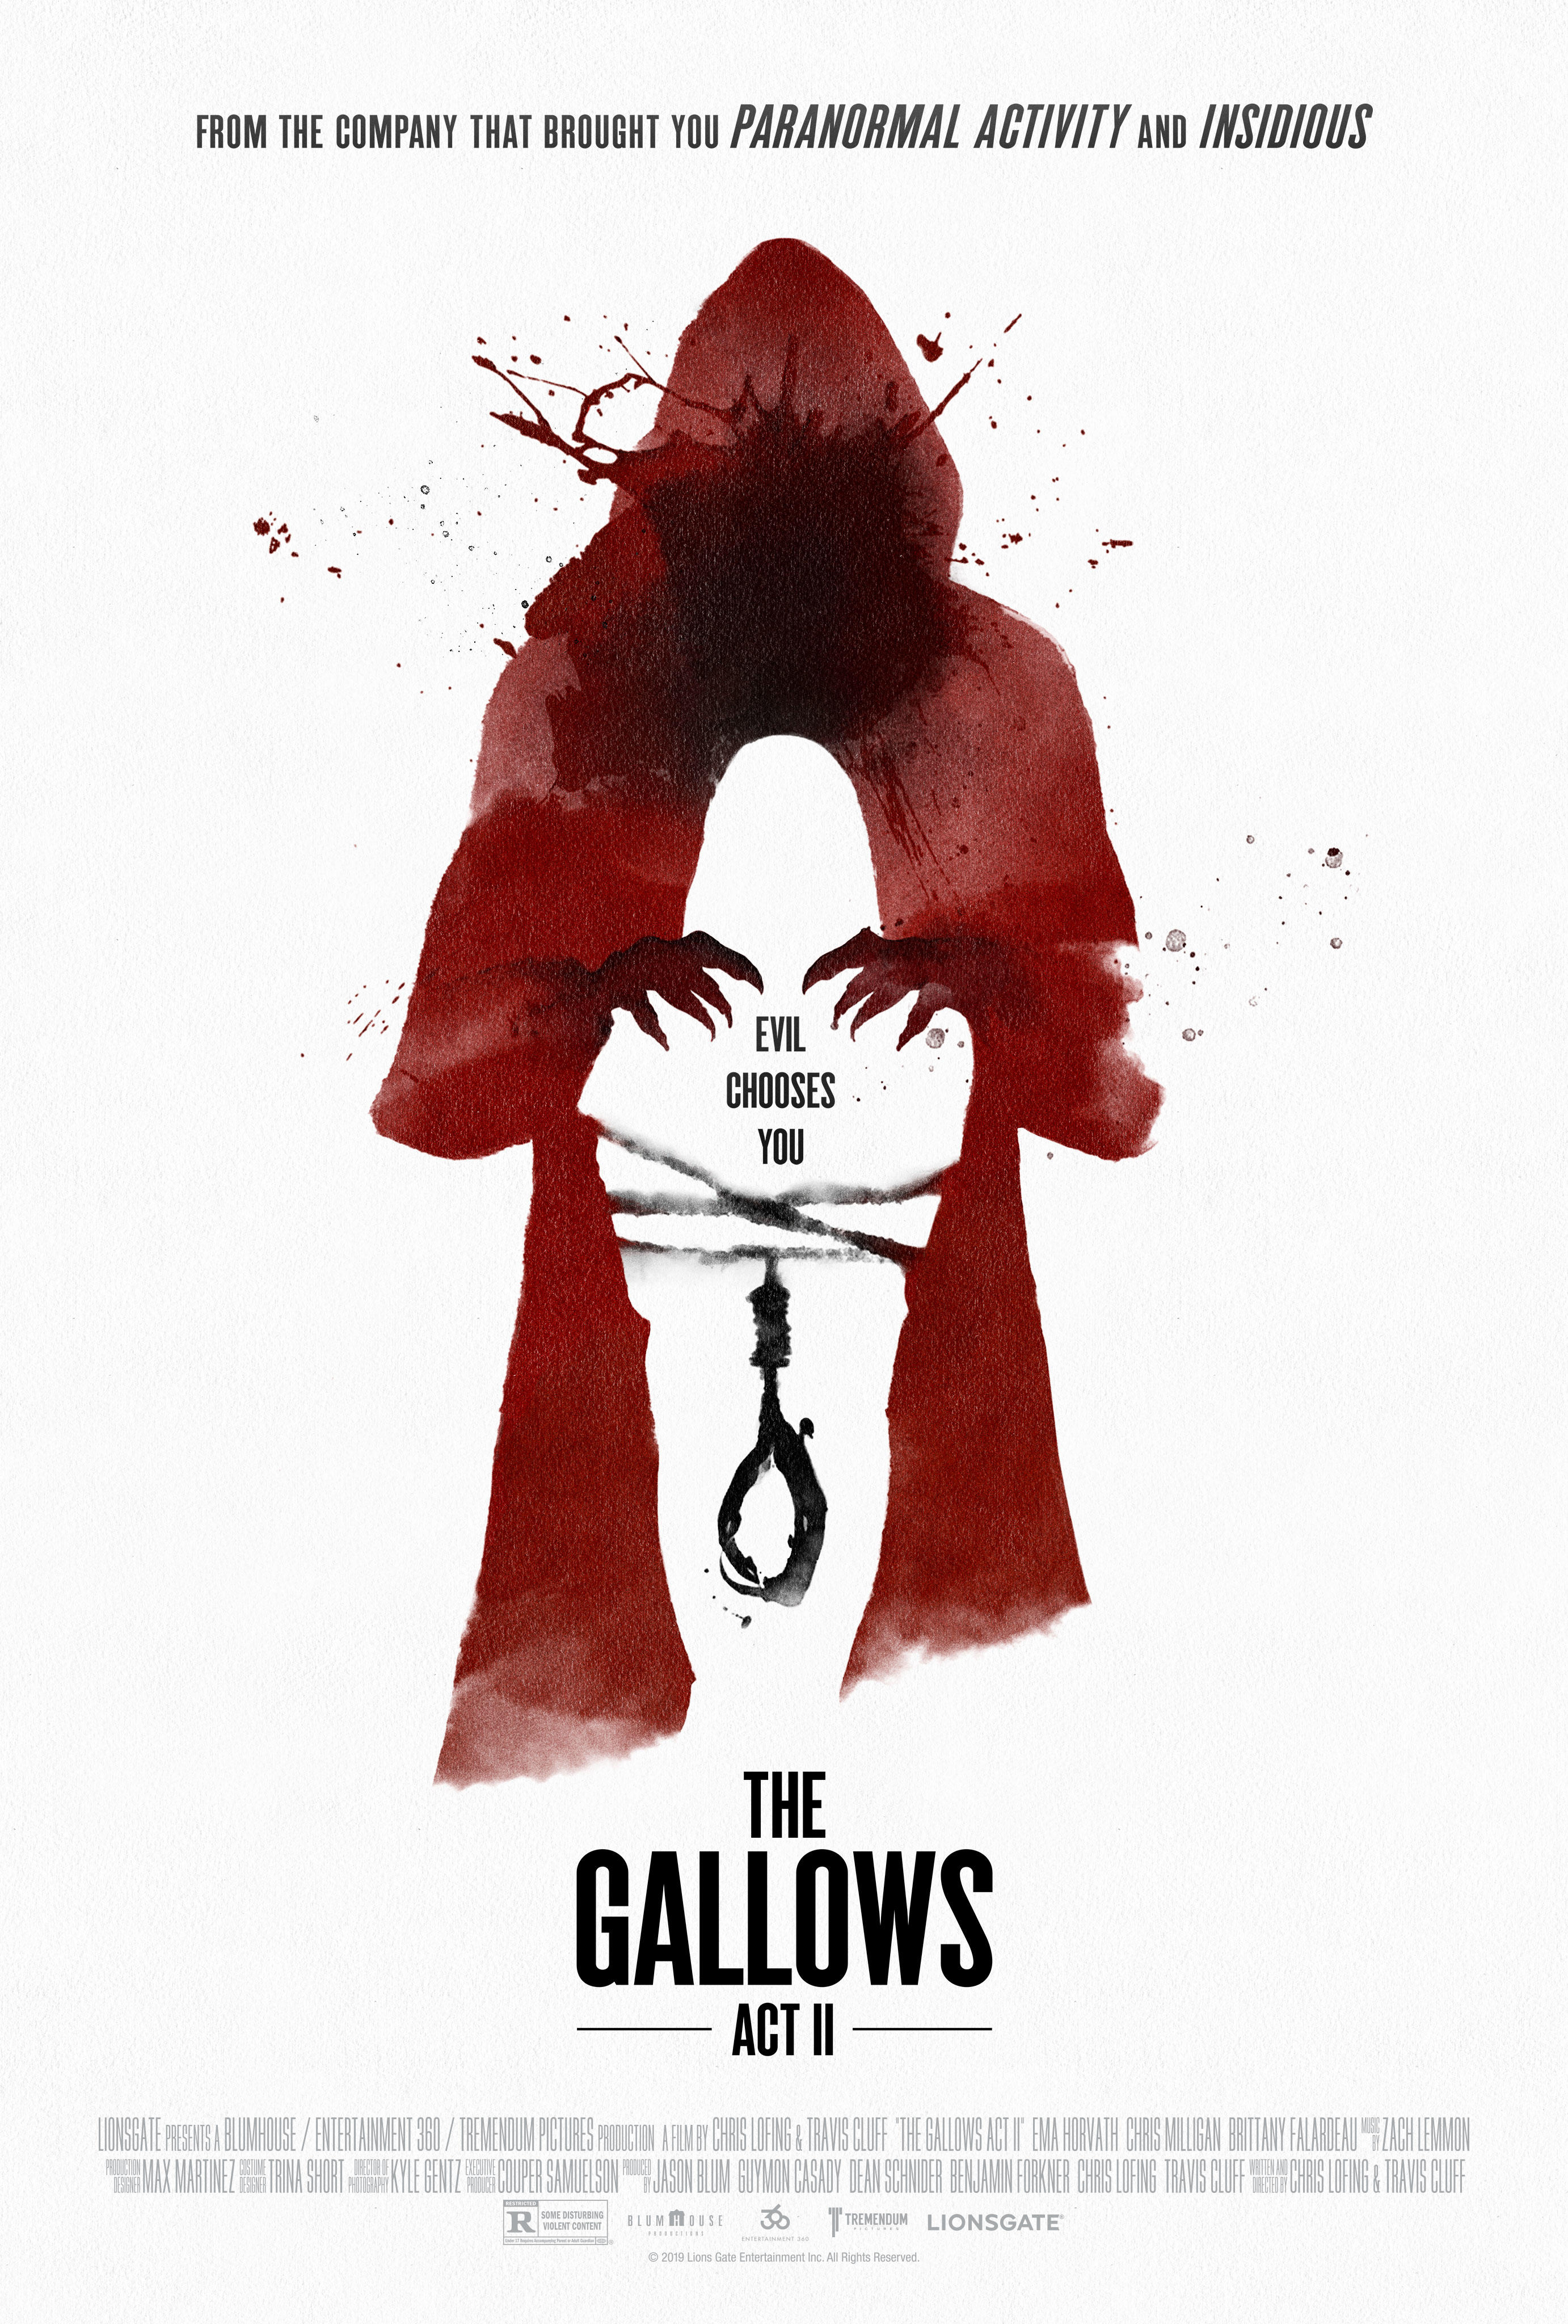 The Gallows Act II poster art